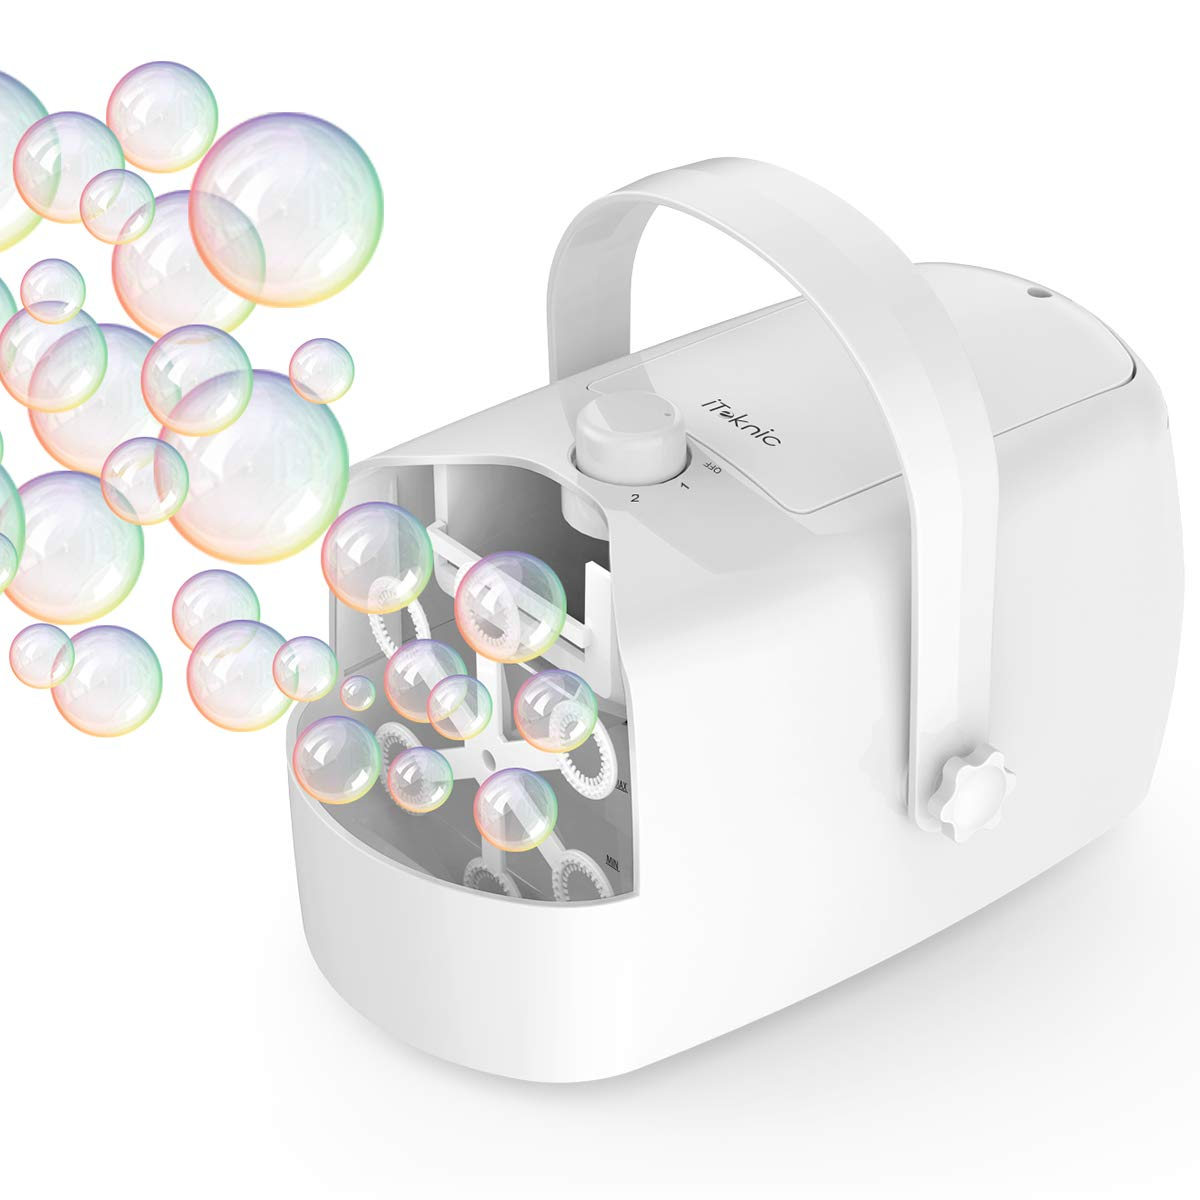 Bubble Machine, iTeknic Automatic Bubble Blower, Portable Auto Bubble Maker with High Output for Outdoor/Indoor Use,Powered by Plug-in or Batteries , Bubble Toys and Gifts for Kids Girls Boys (White)